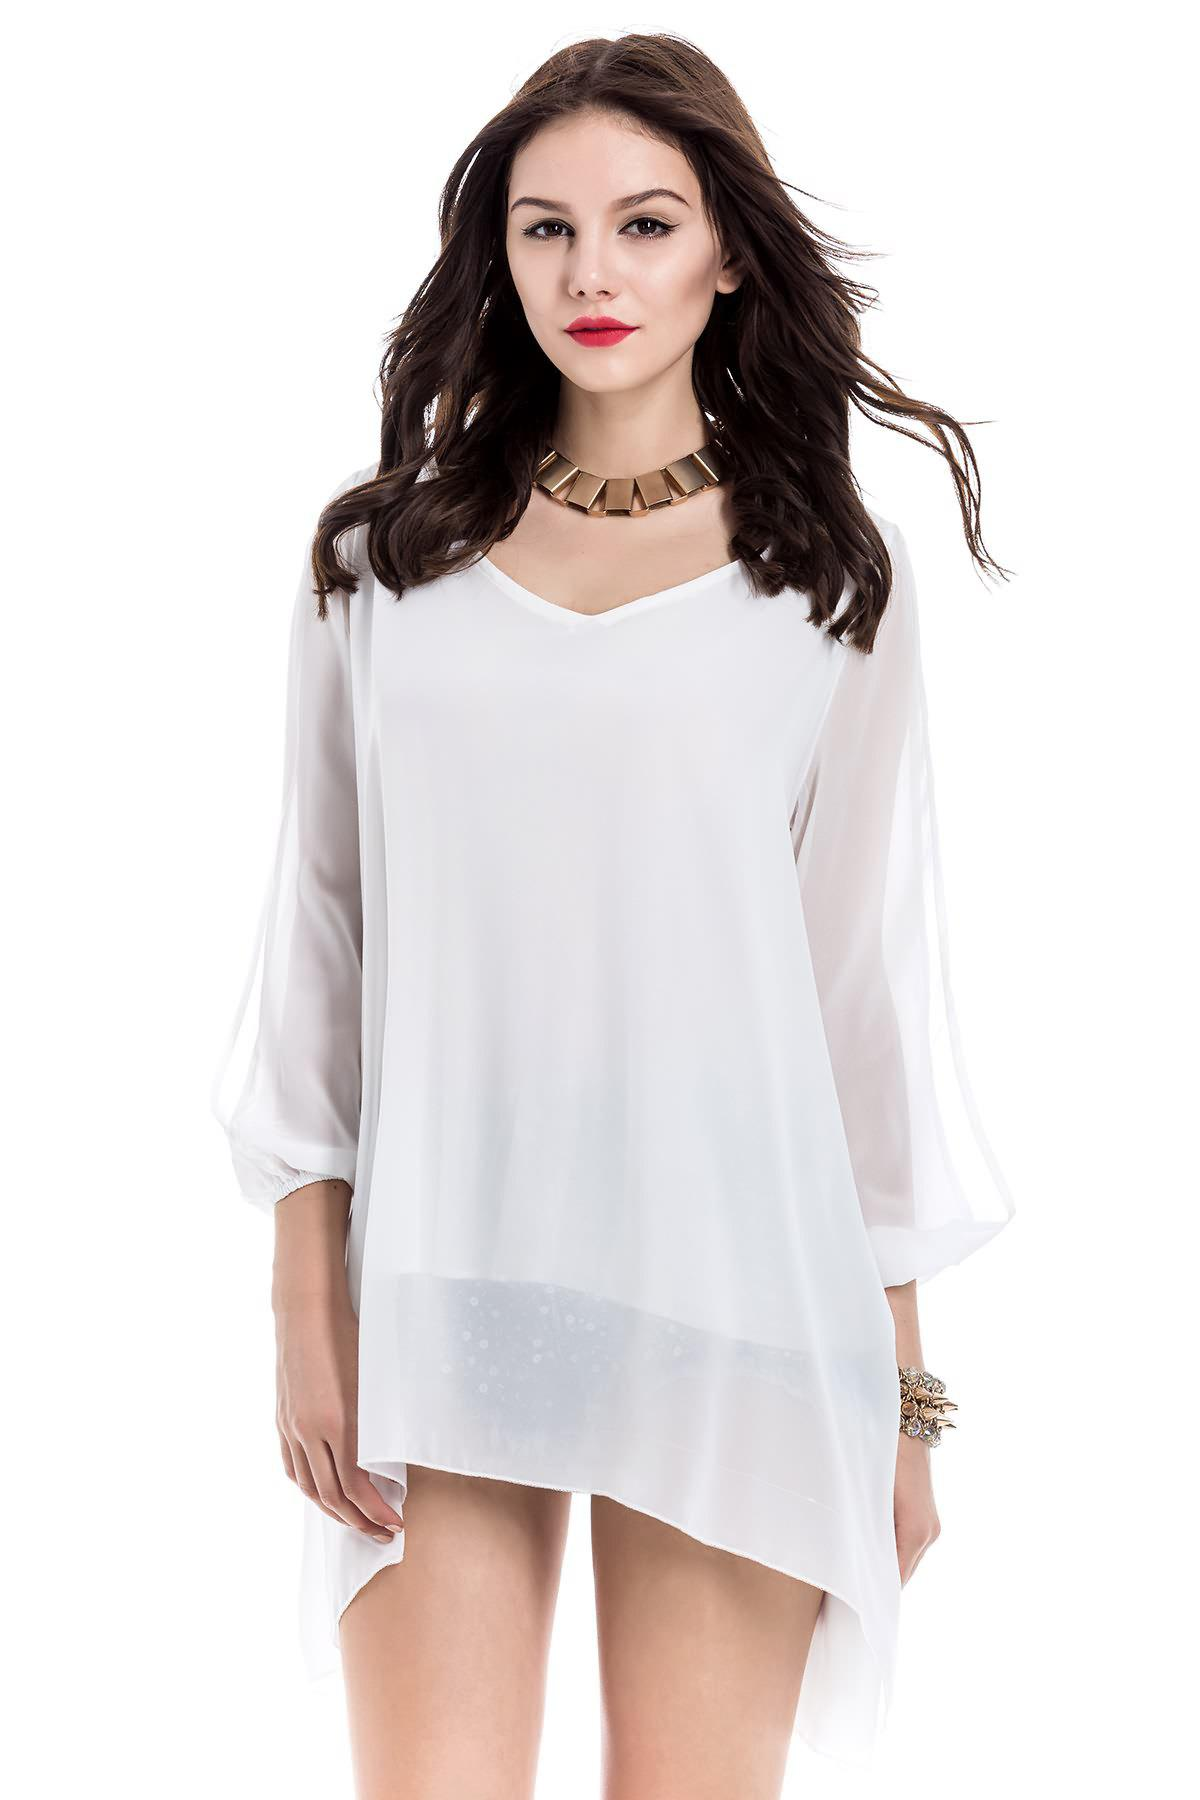 Long Sleeve Chiffon Beach Shift Dress YC0289104